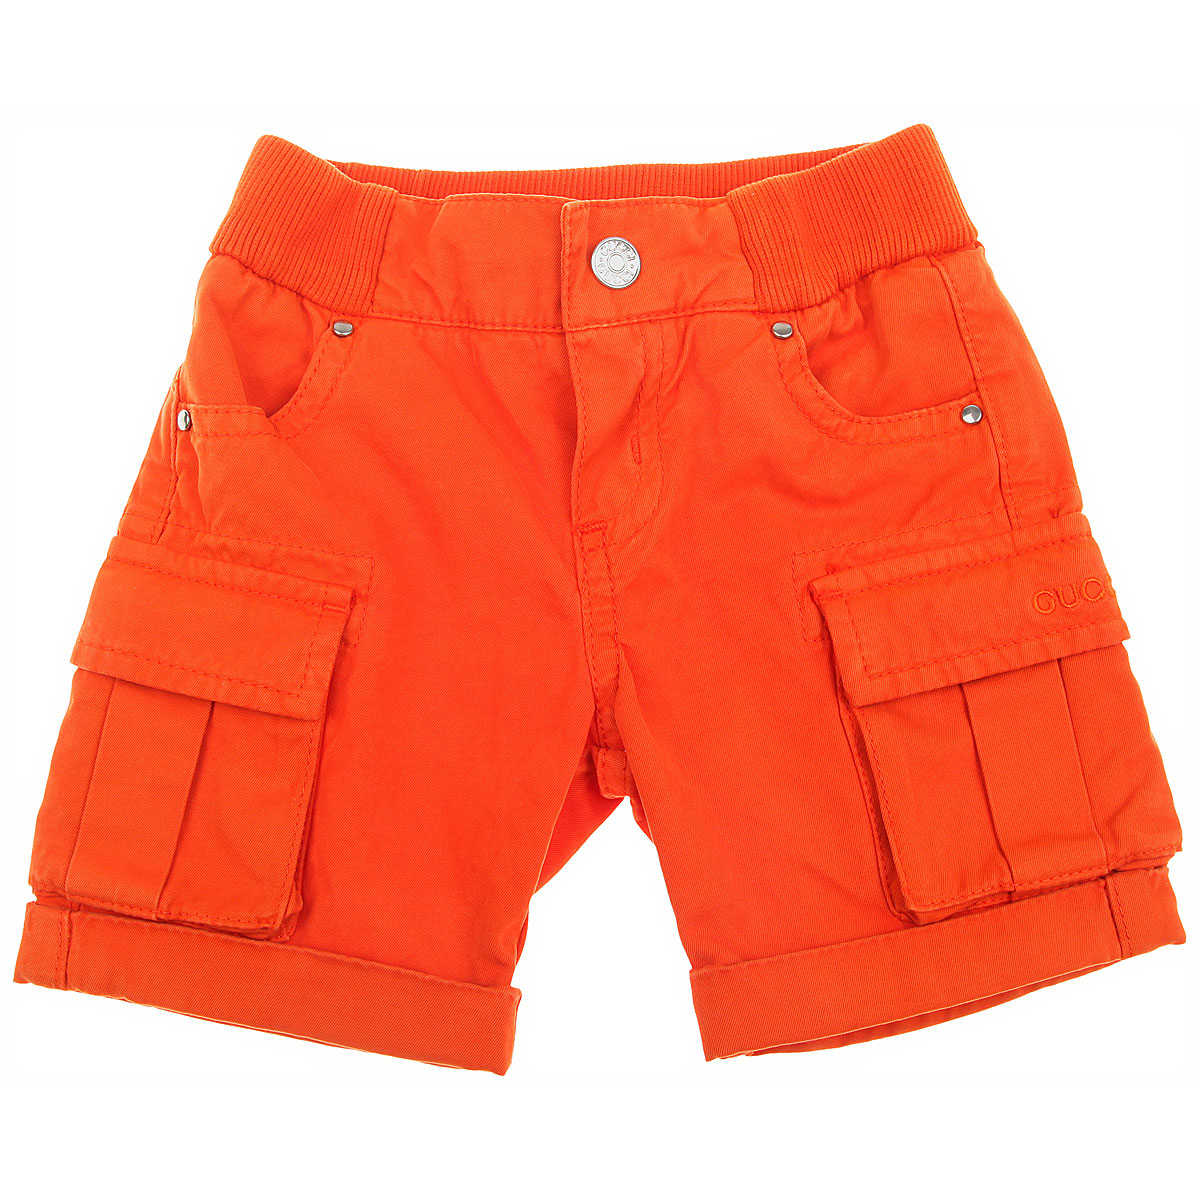 Gucci Baby Shorts for Boys in Outlet Orange USA - GOOFASH